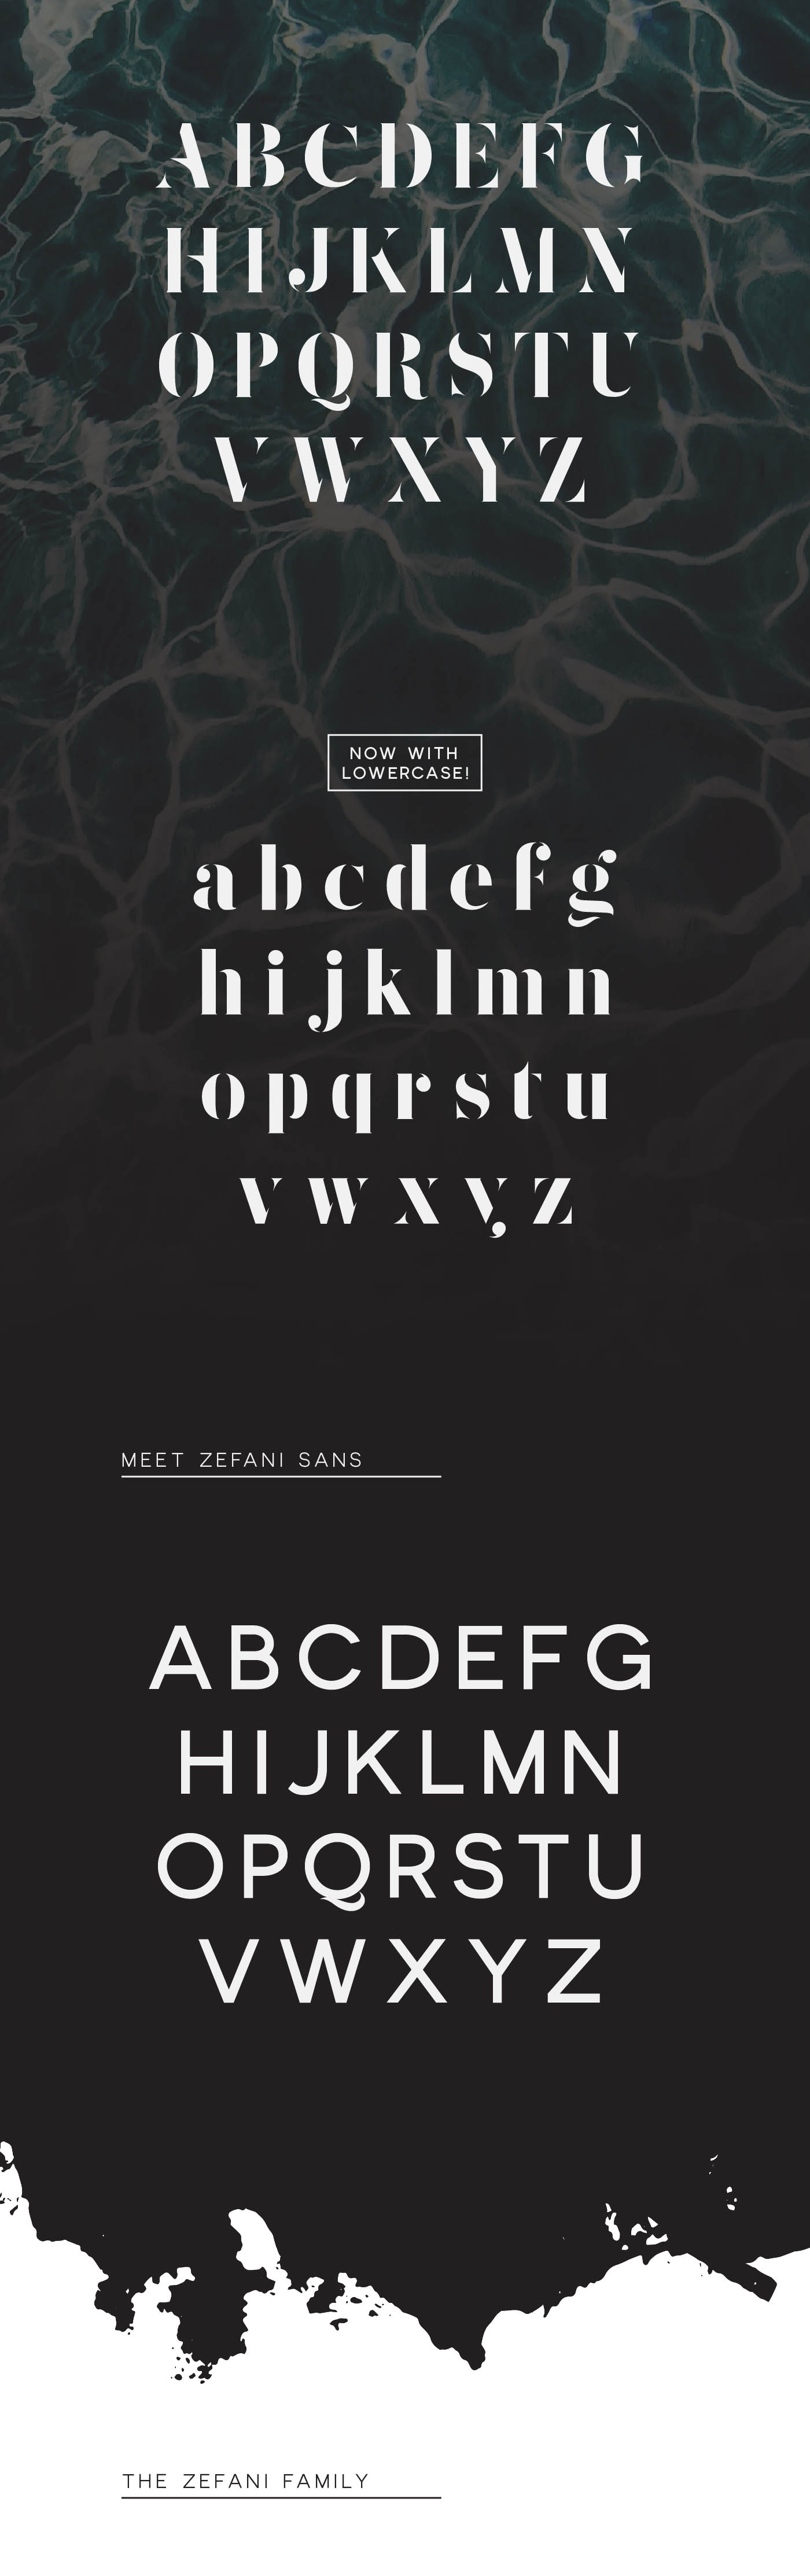 Typeface Board [Recovered]